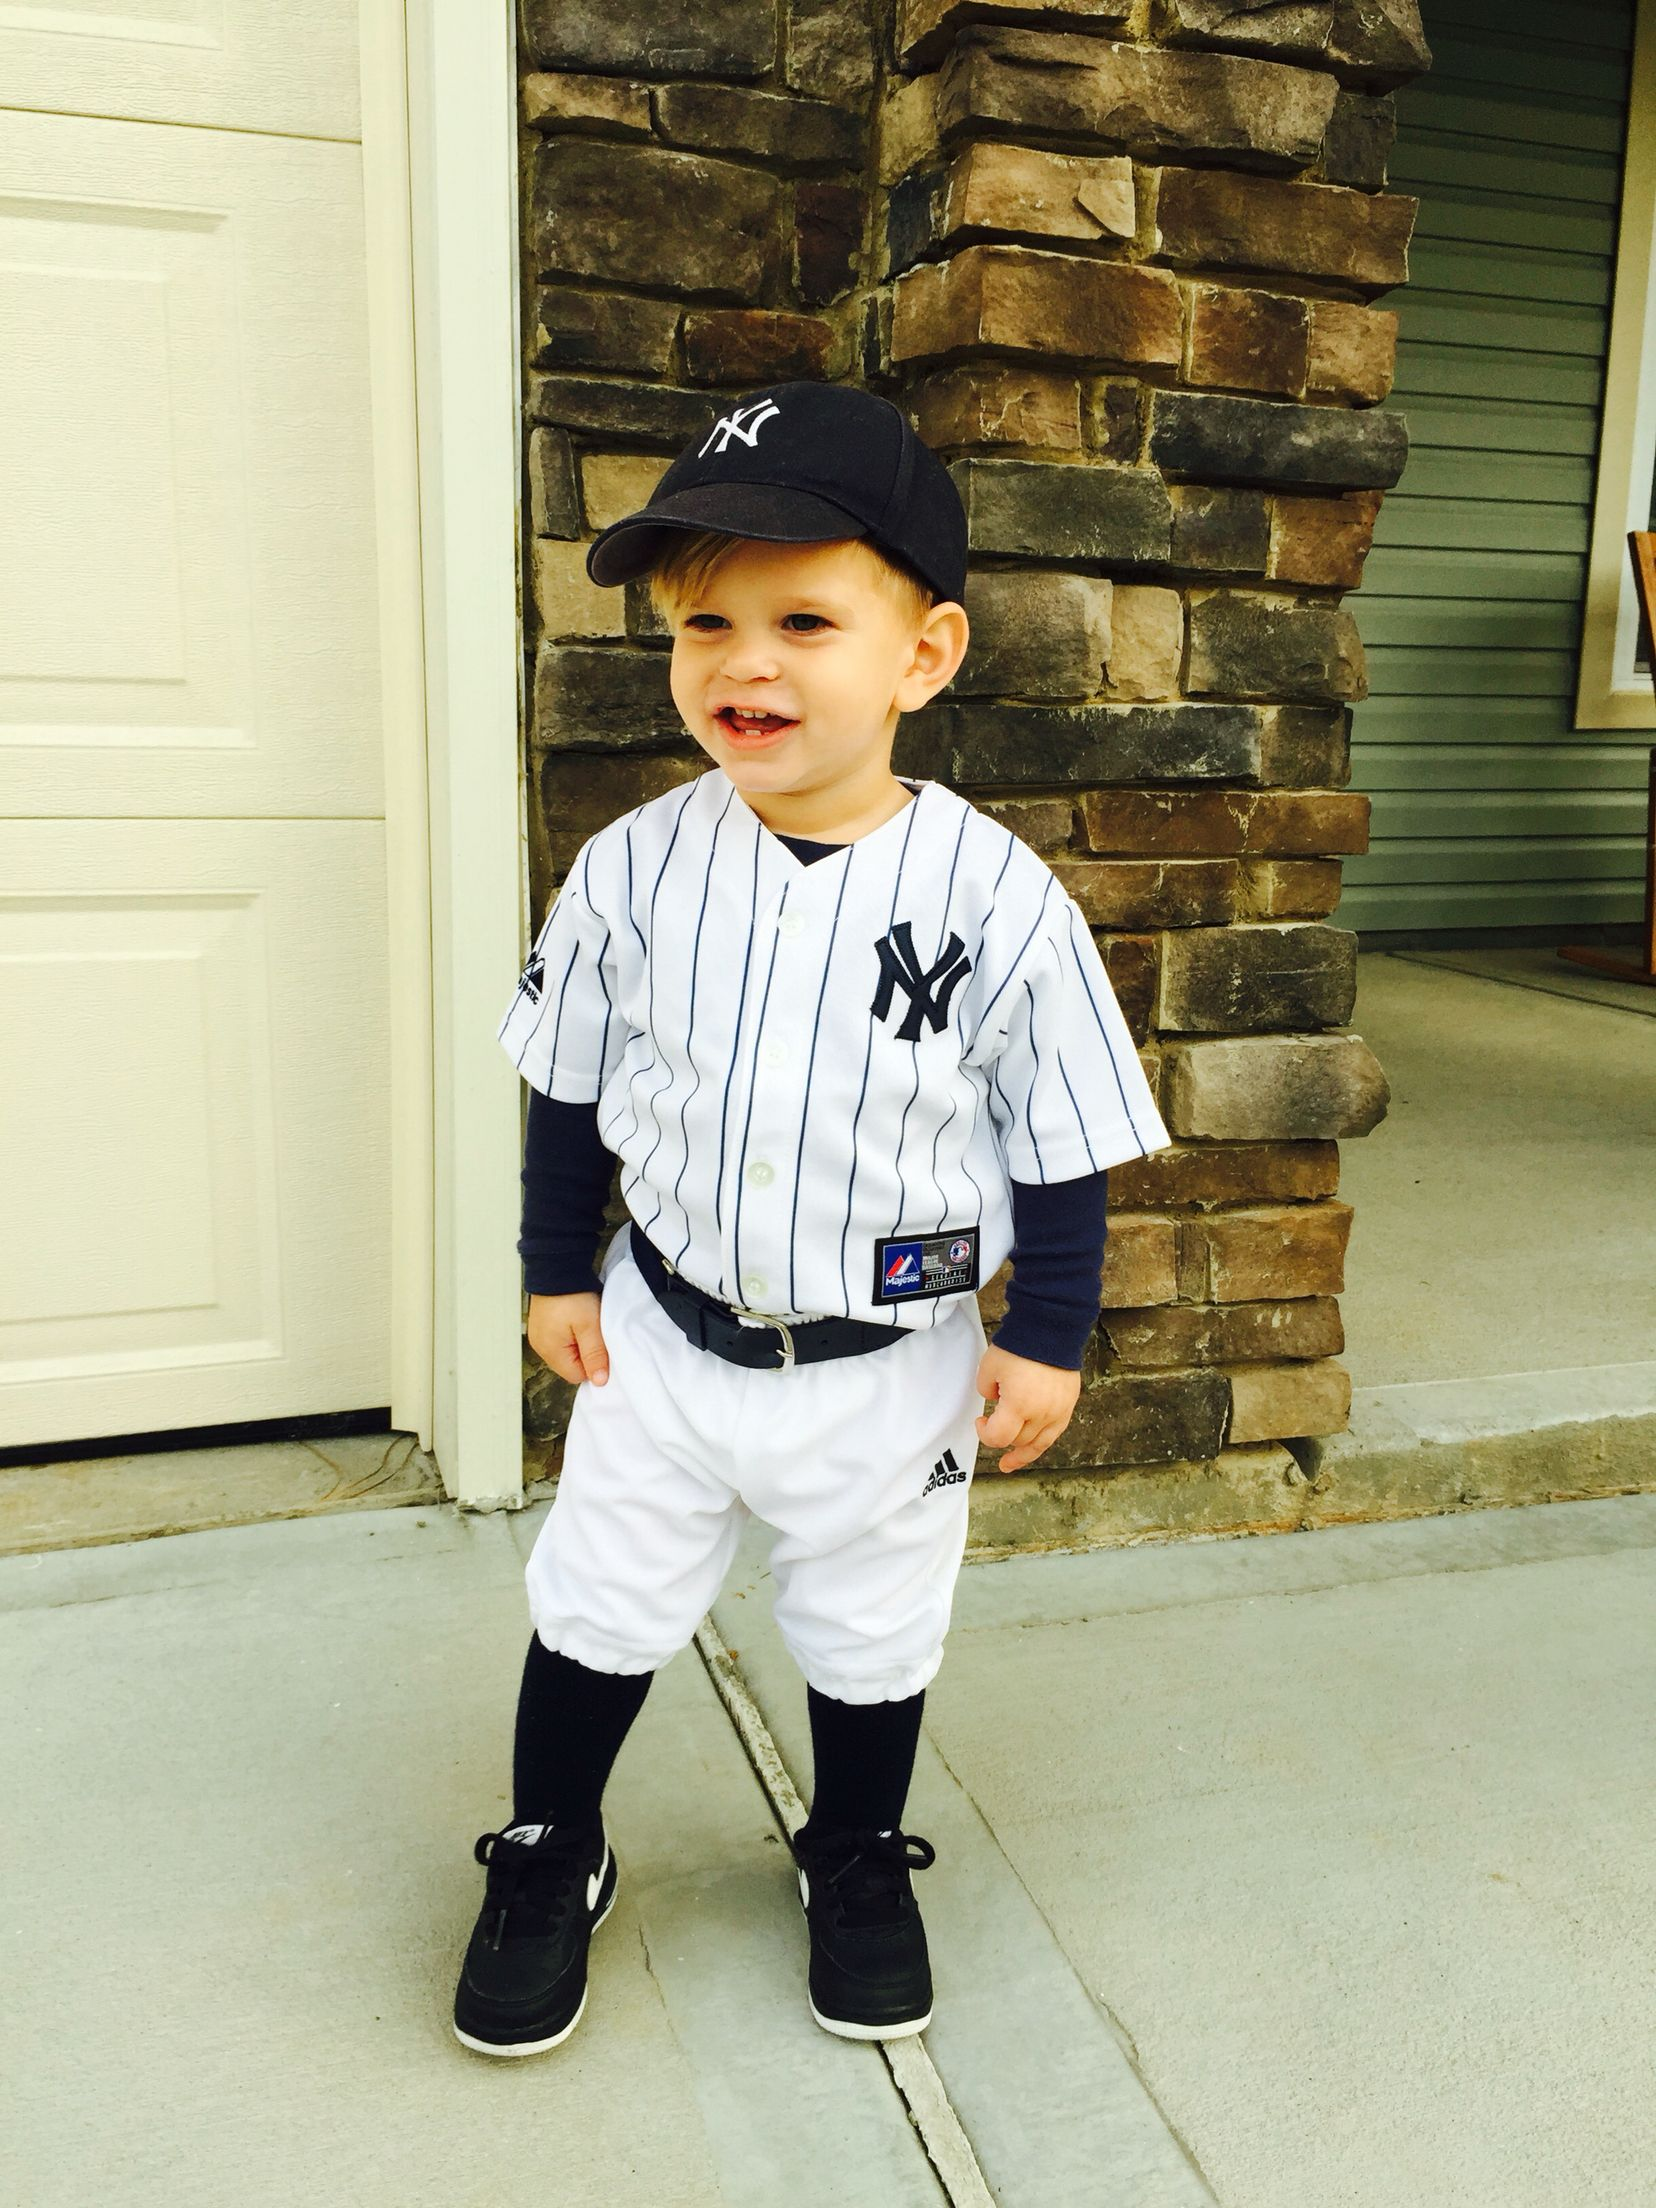 Cole David 2014 Halloween costume toddler baseball player